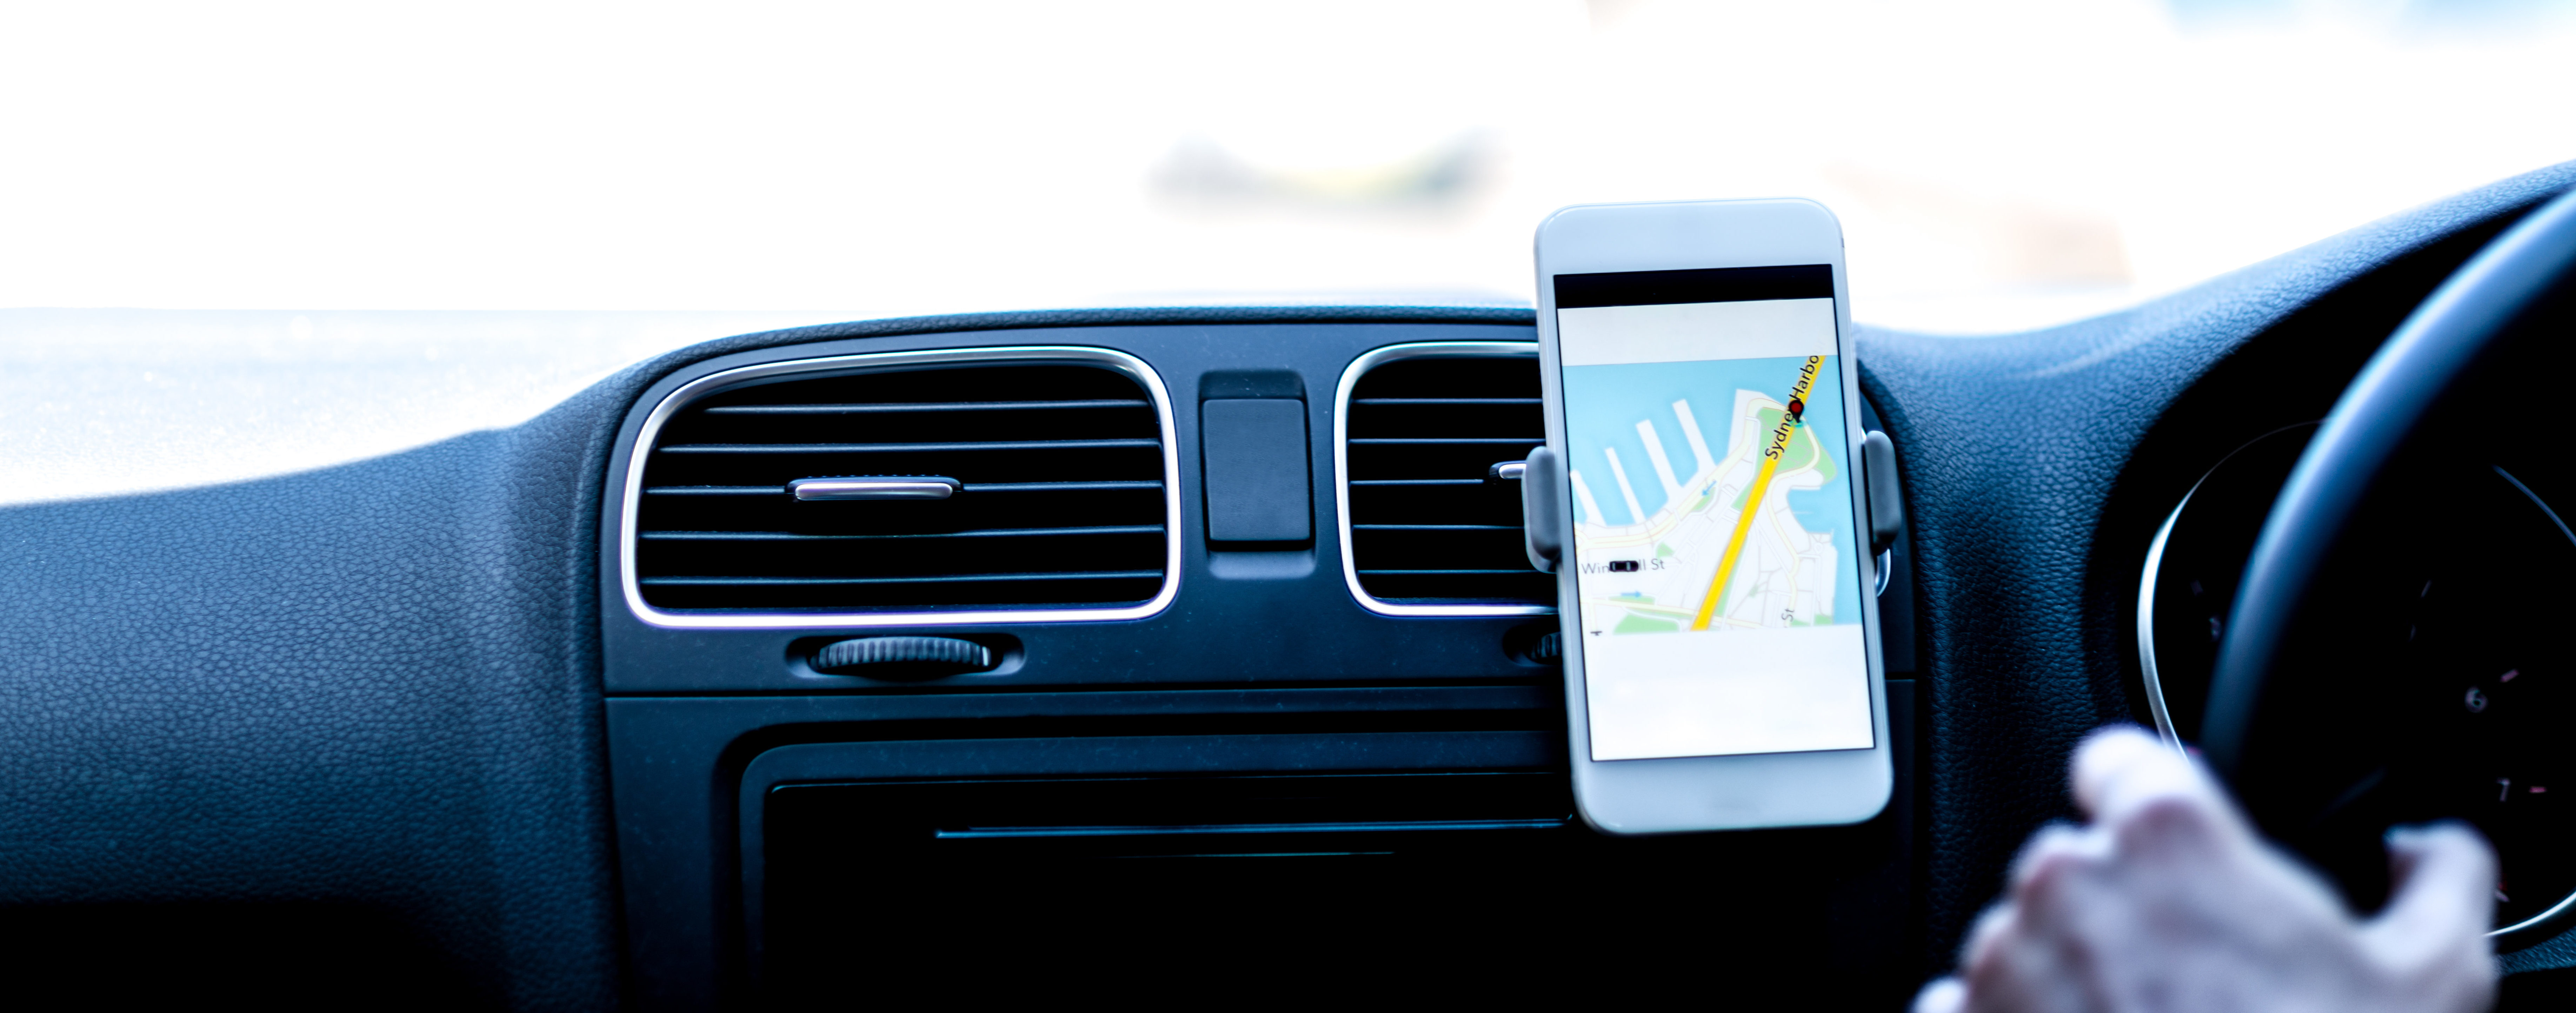 rideshare driver drives with cell phone gps